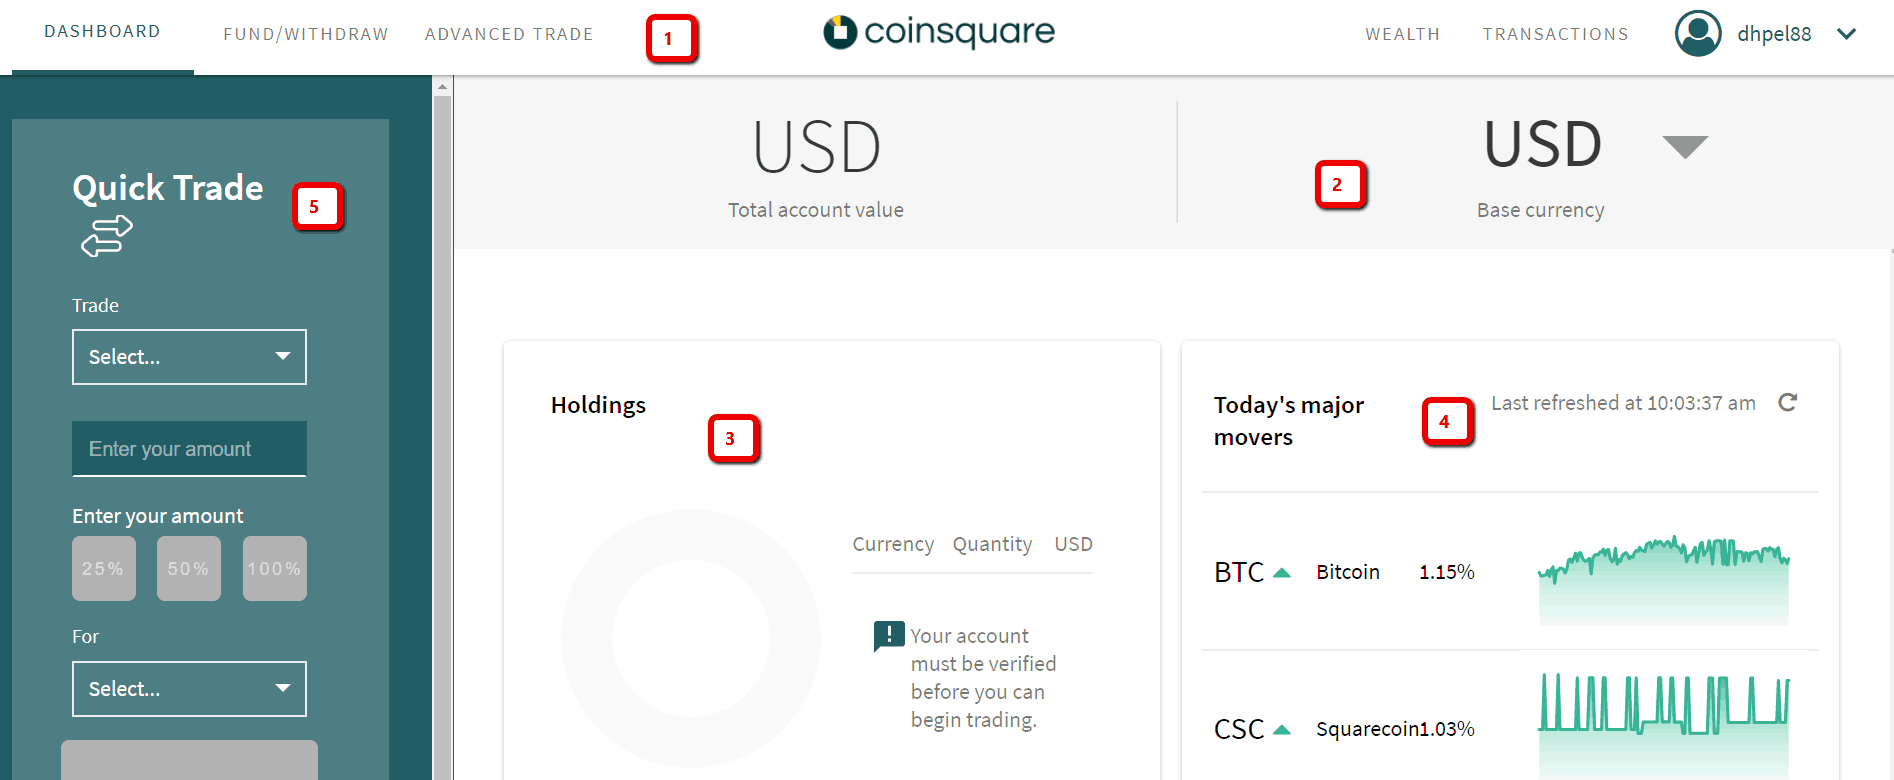 Coinsquare - Trading interface